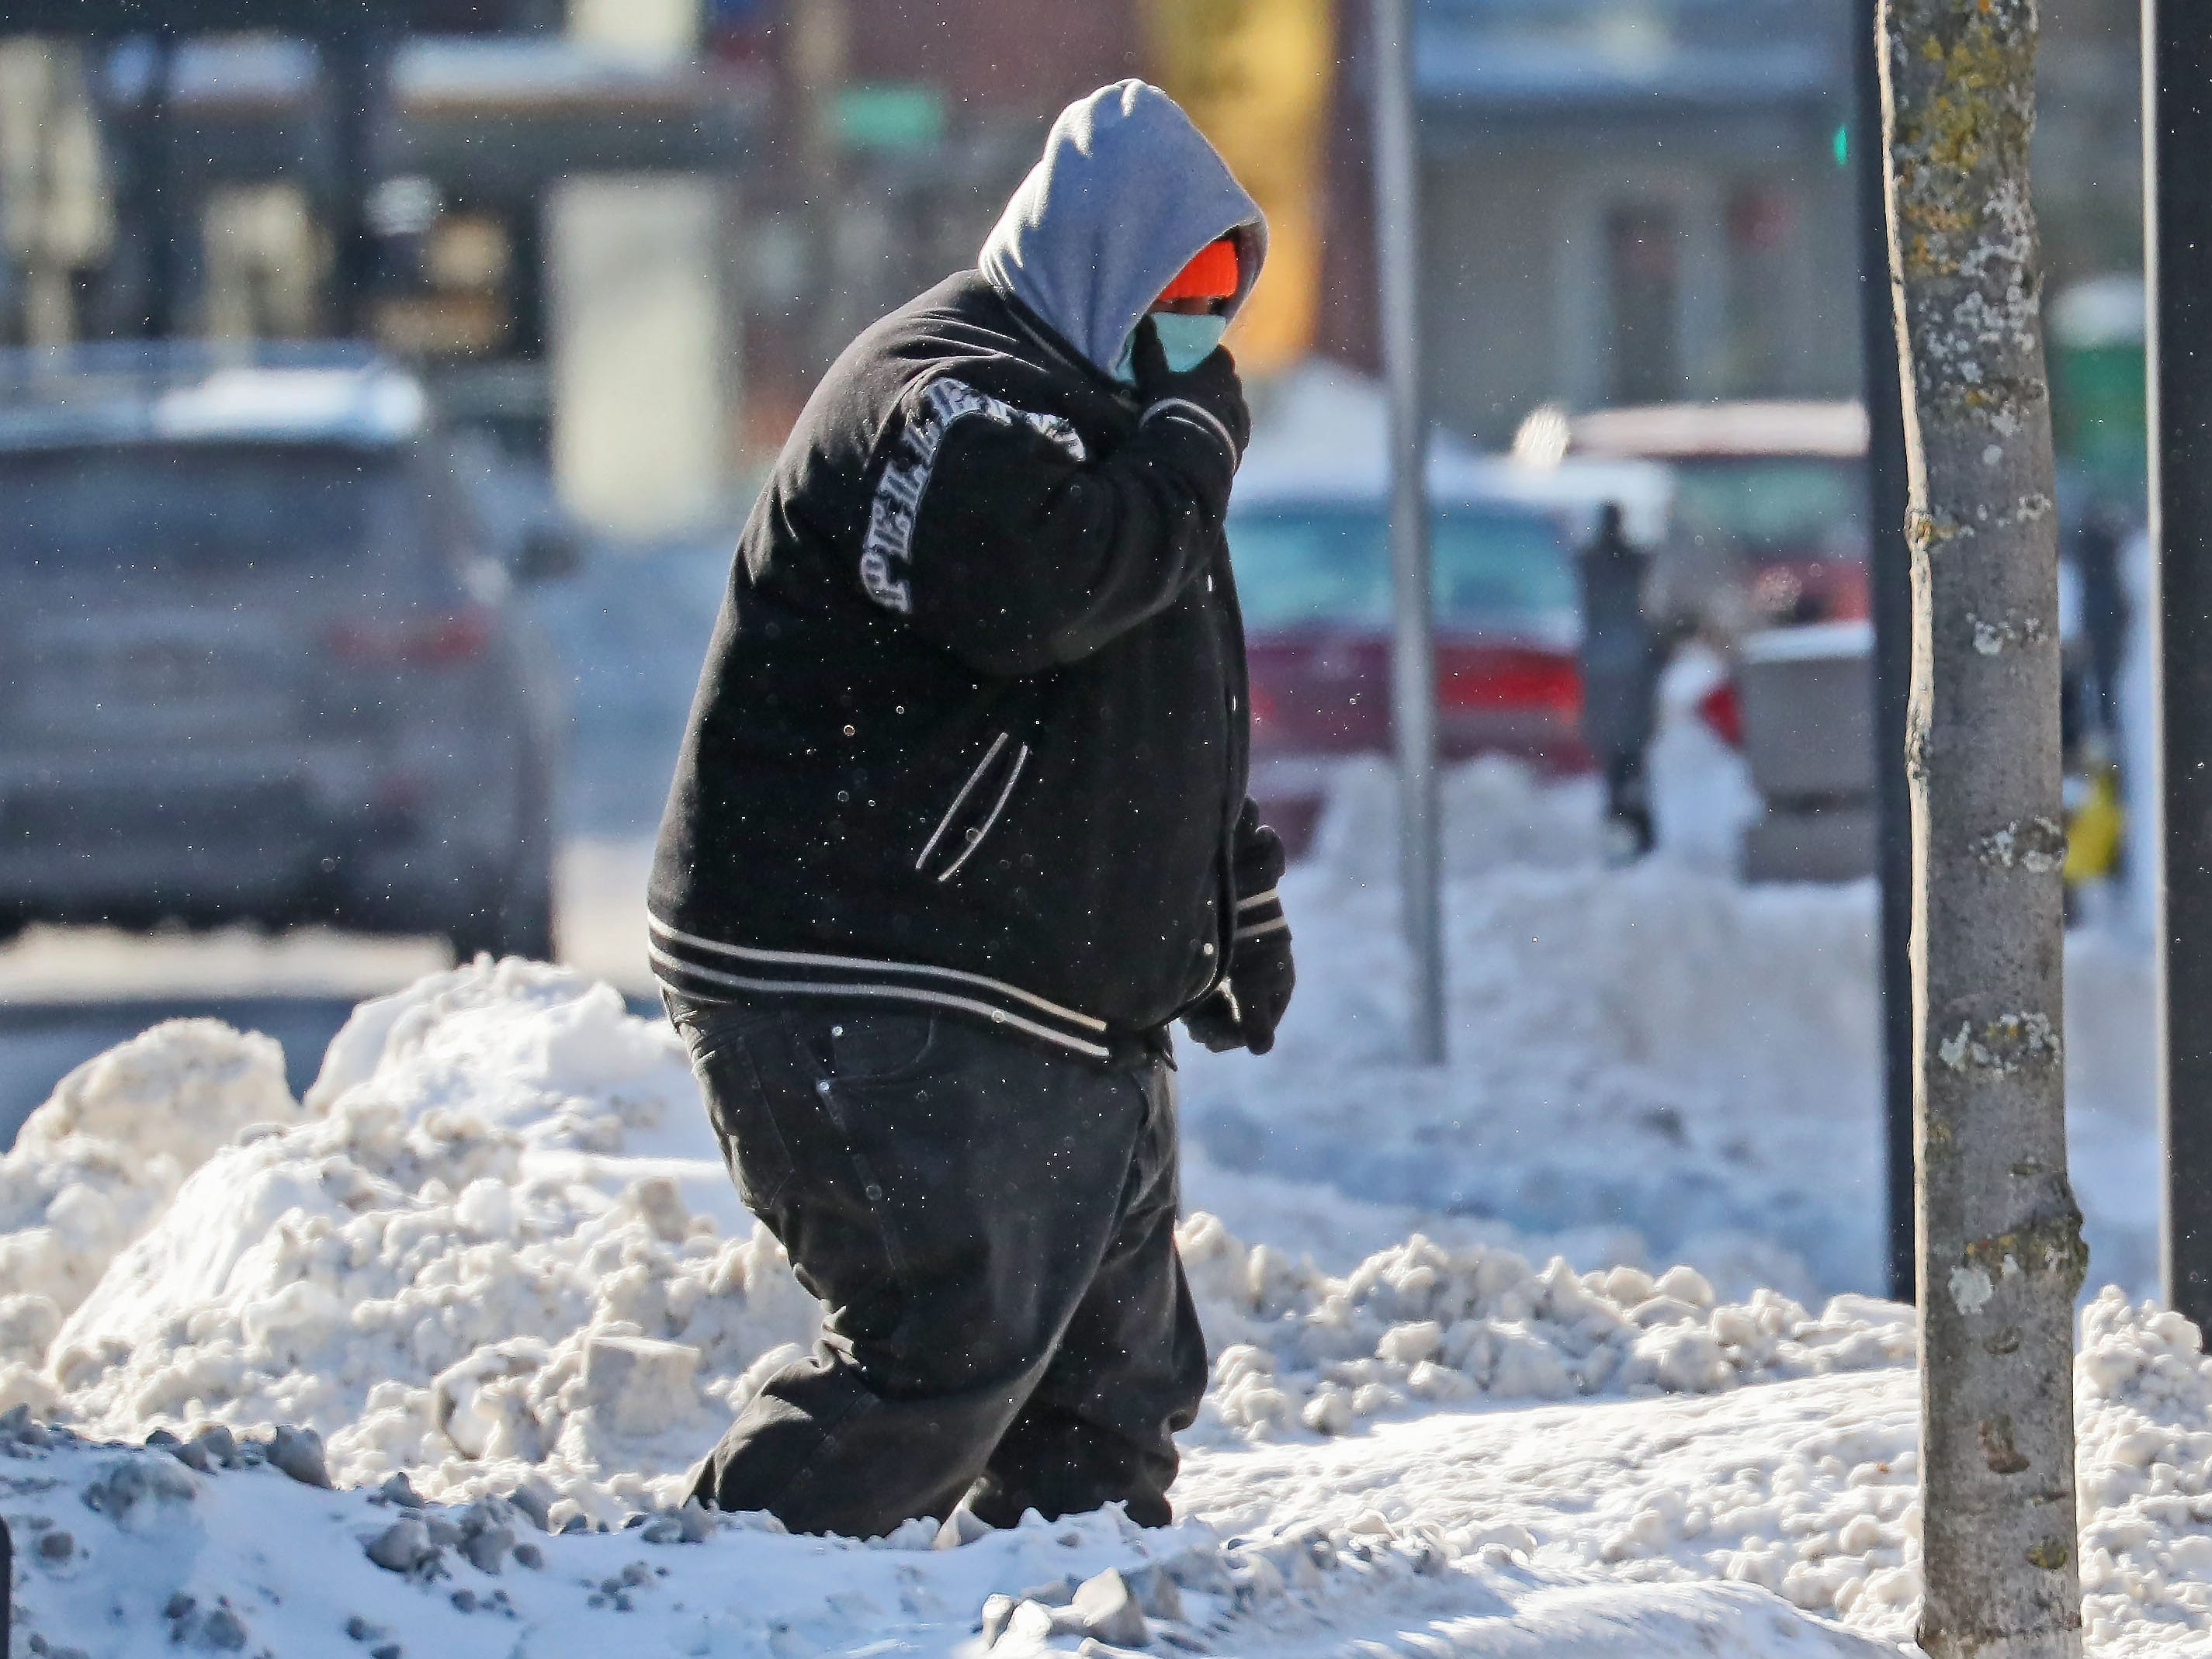 A man covers his face as he heads into the wind along West Kilbourn Avenue in downtown Milwaukee.